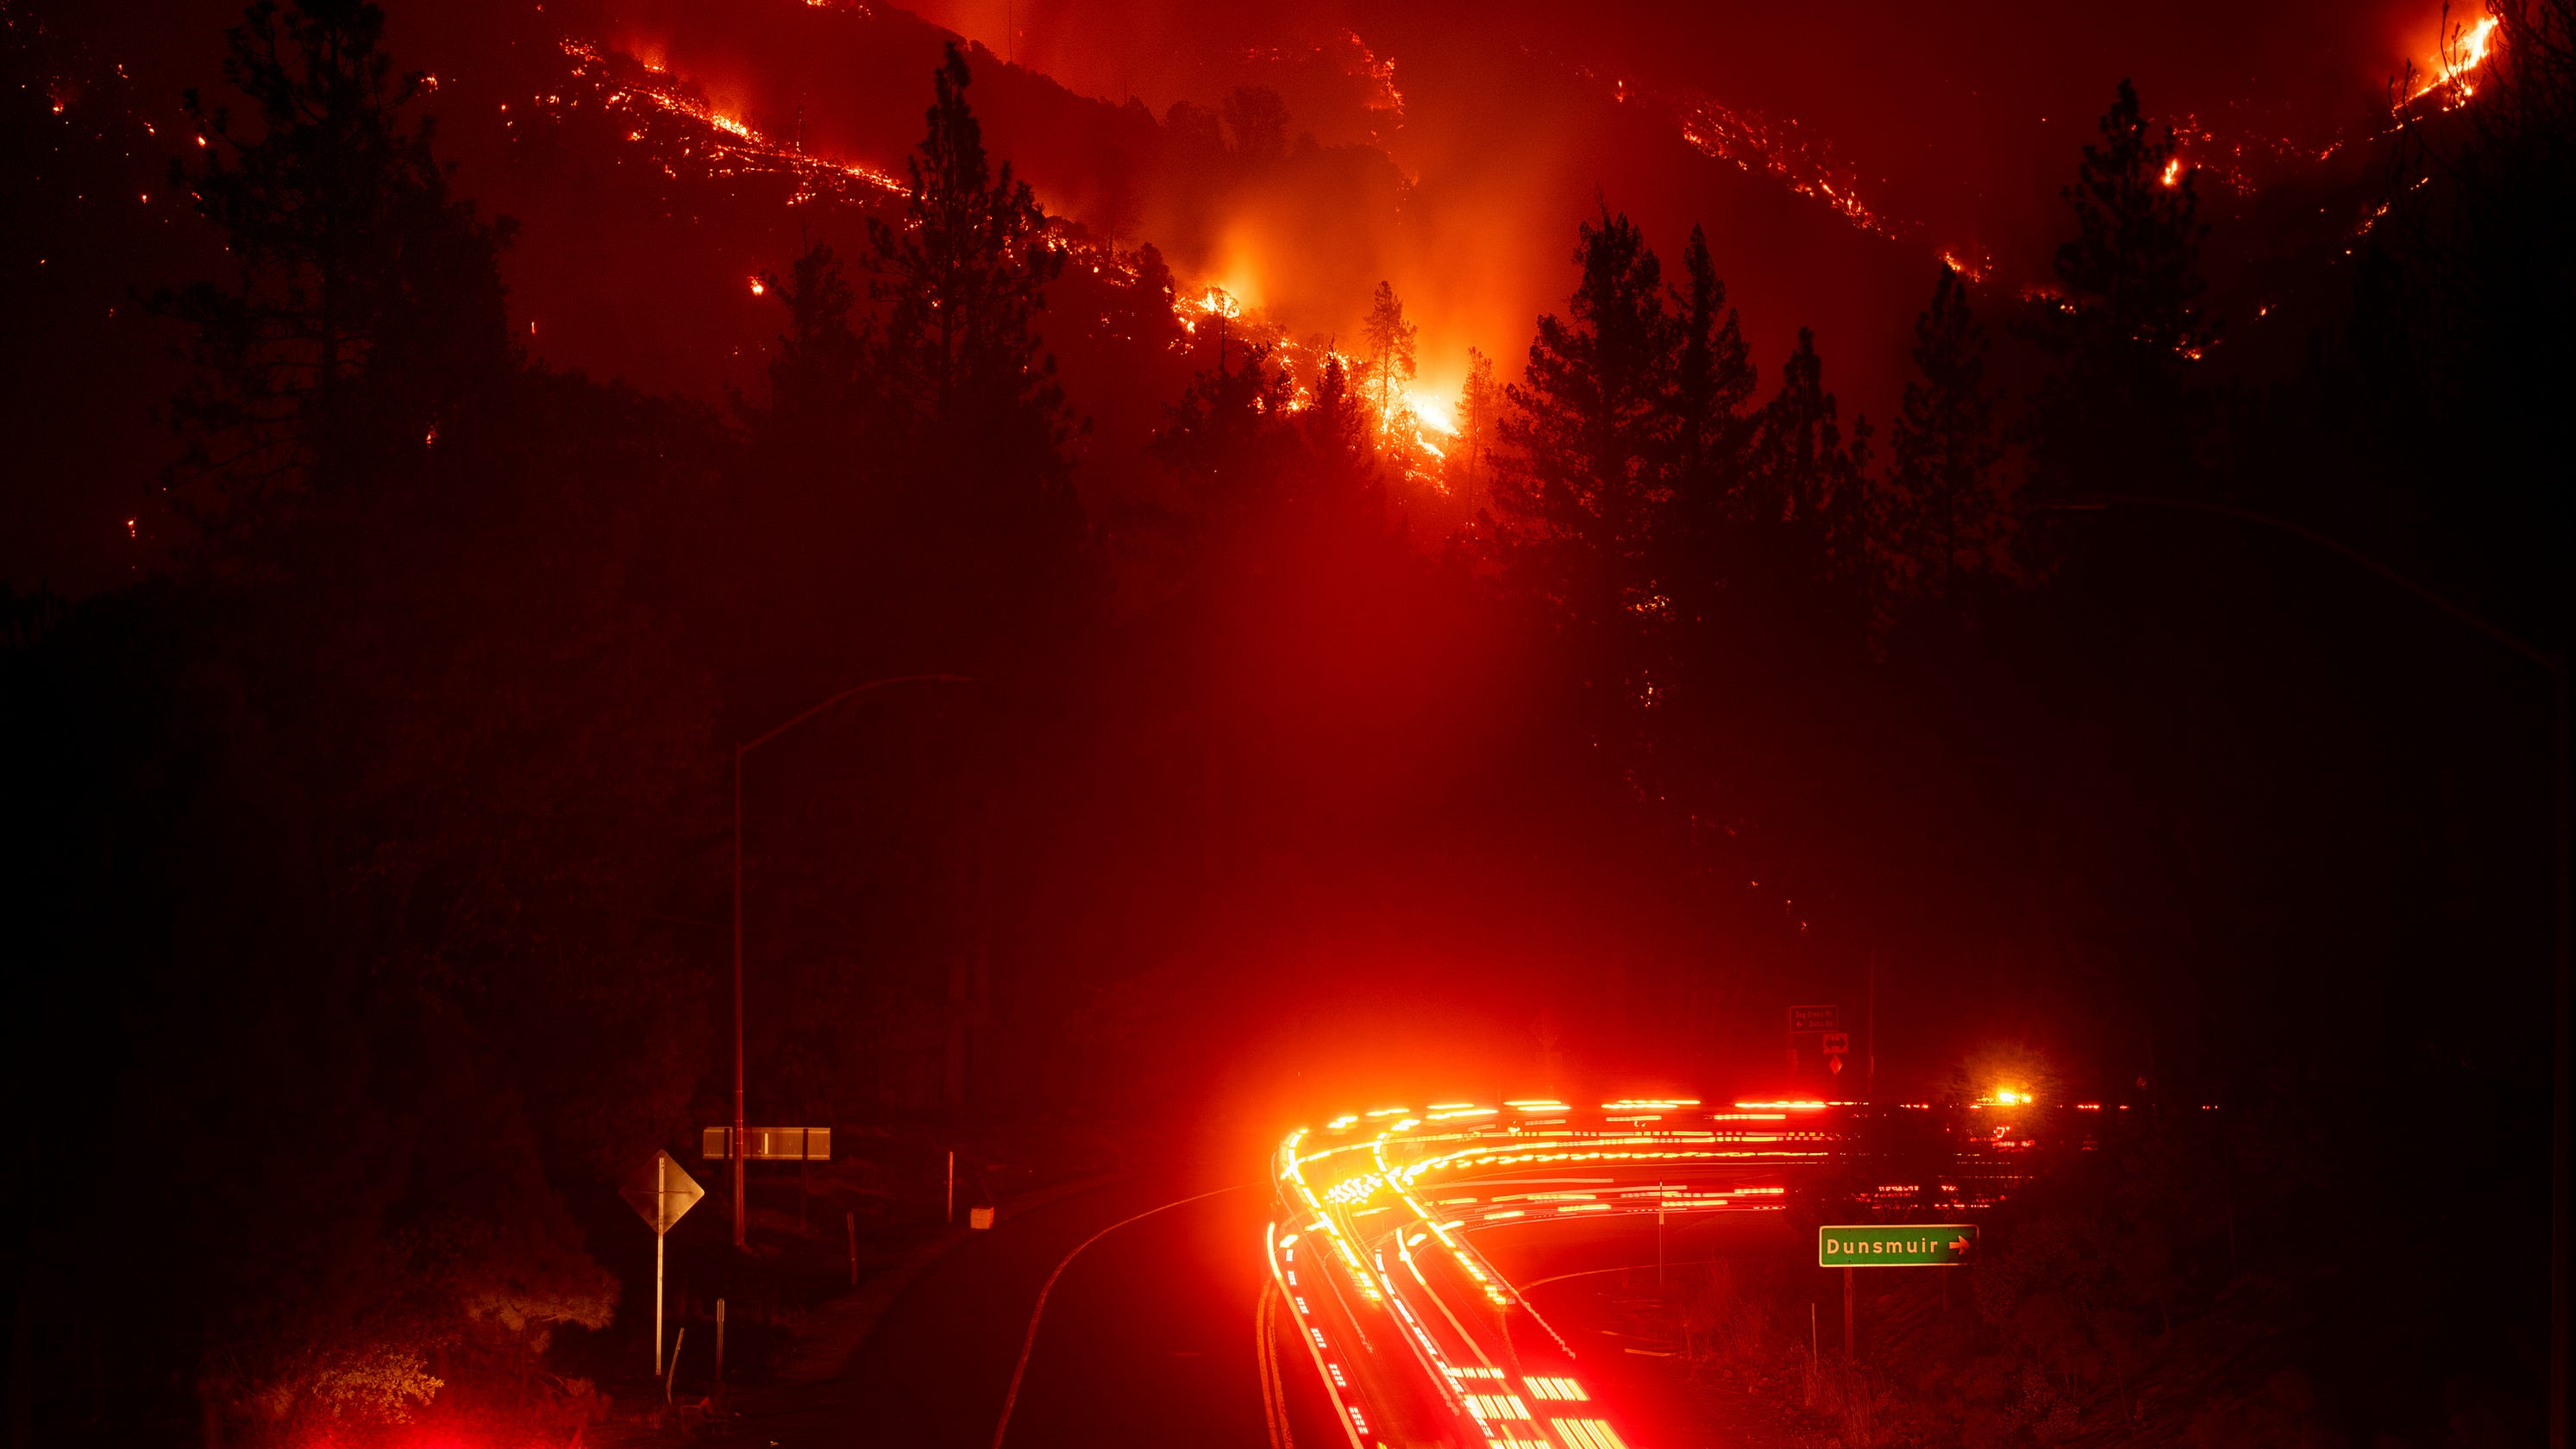 California wildfires: Insurance claims top $11 4B for 2018